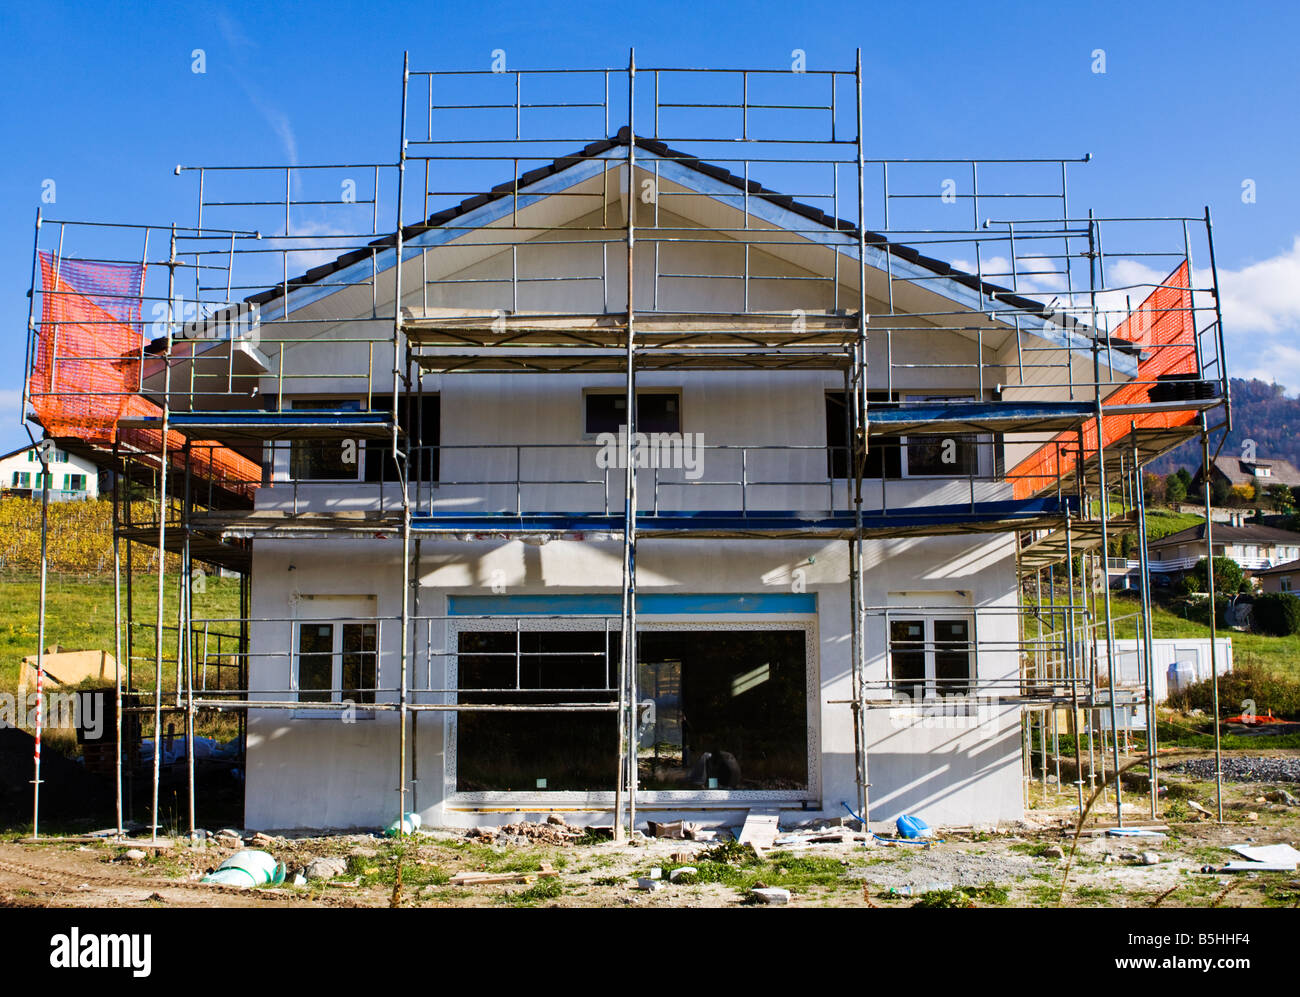 A Small House under Construction in Switzerland Stock Photo